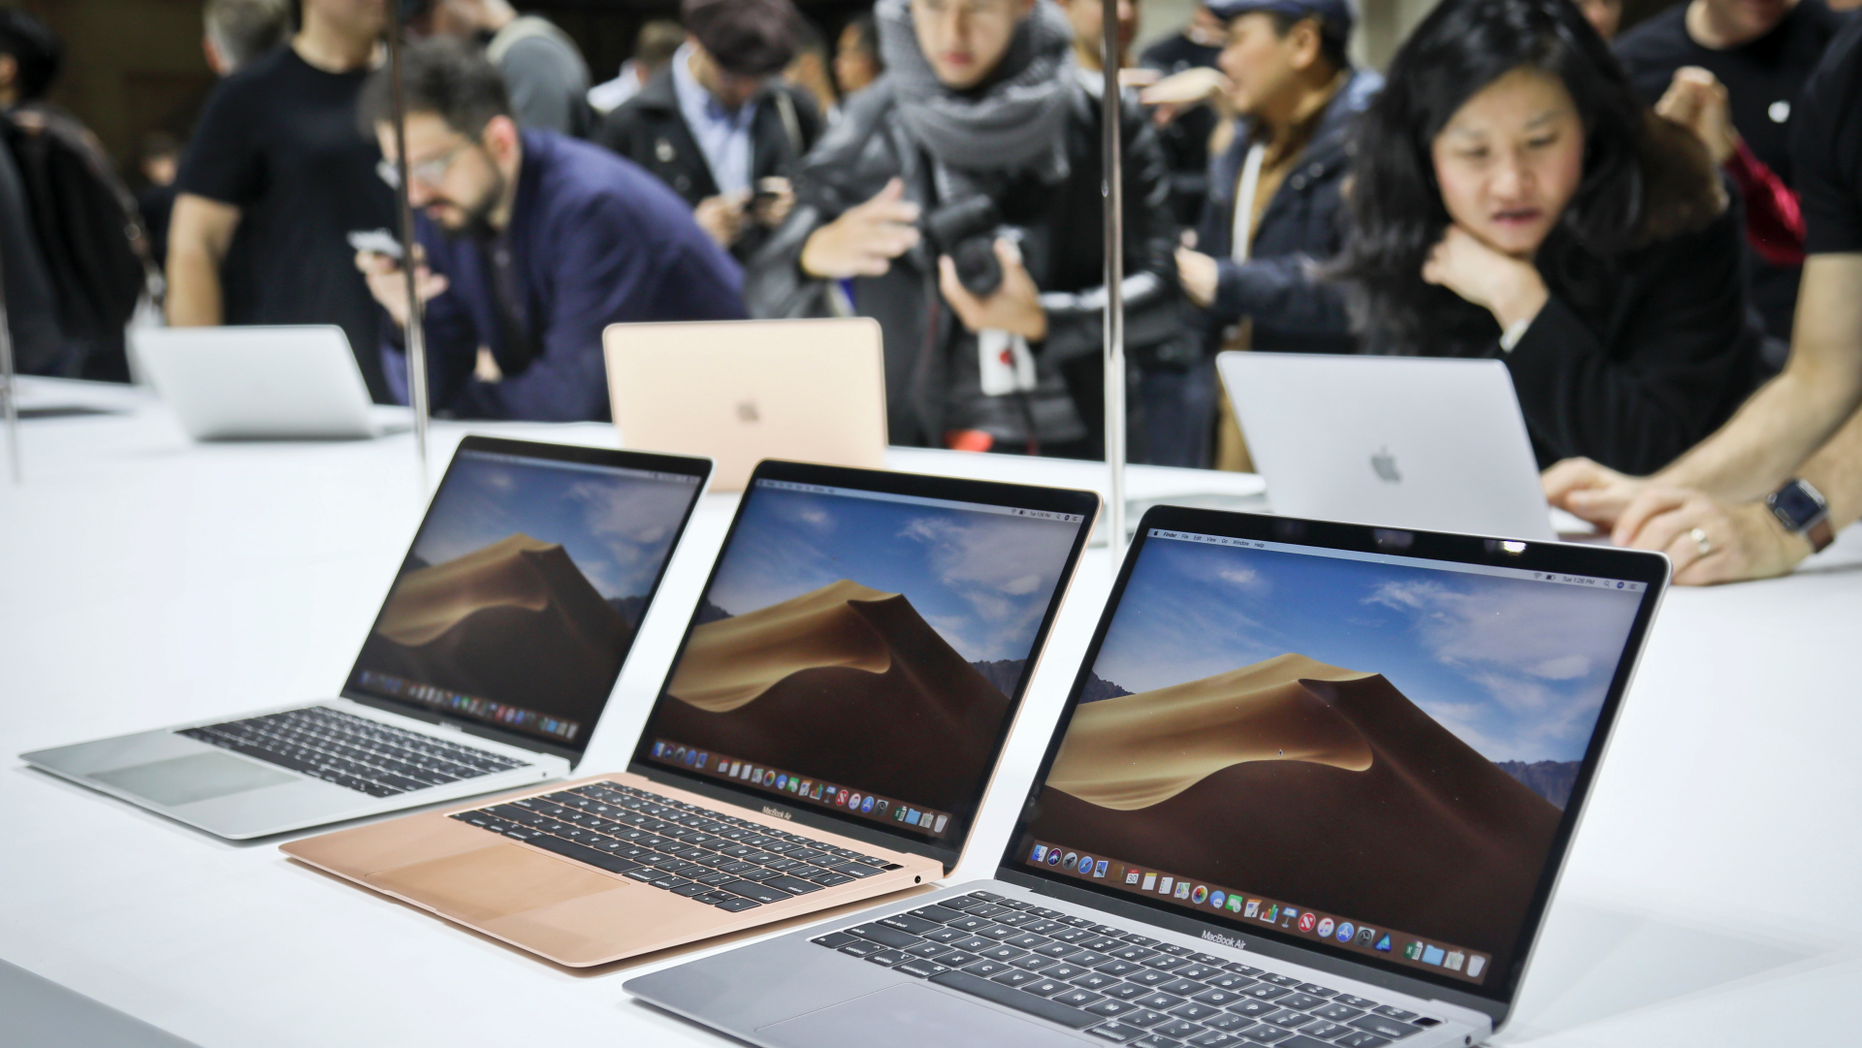 FILE- In this Oct. 30, 2018, file photo Apple's new MacBook Air computers are displayed during the company's showcase of new products in the Brooklyn borough of New York. (AP Photo/Bebeto Matthews, File)